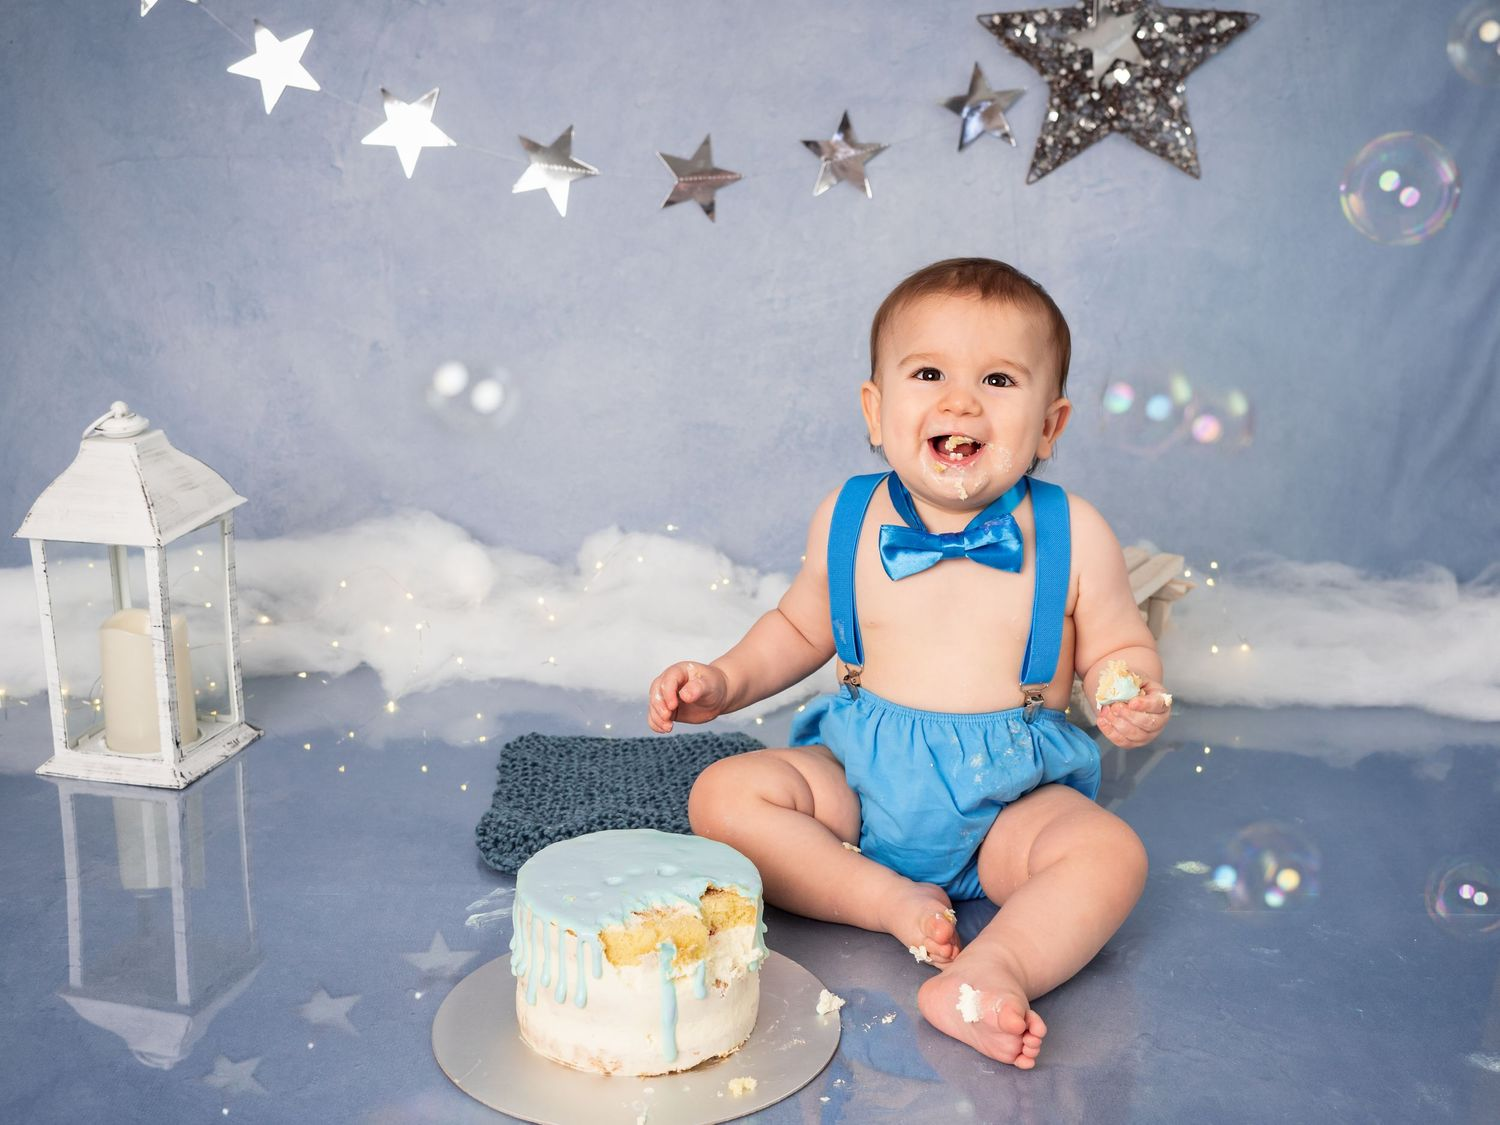 Baby boy Cake Smash session in Mödling, Austria